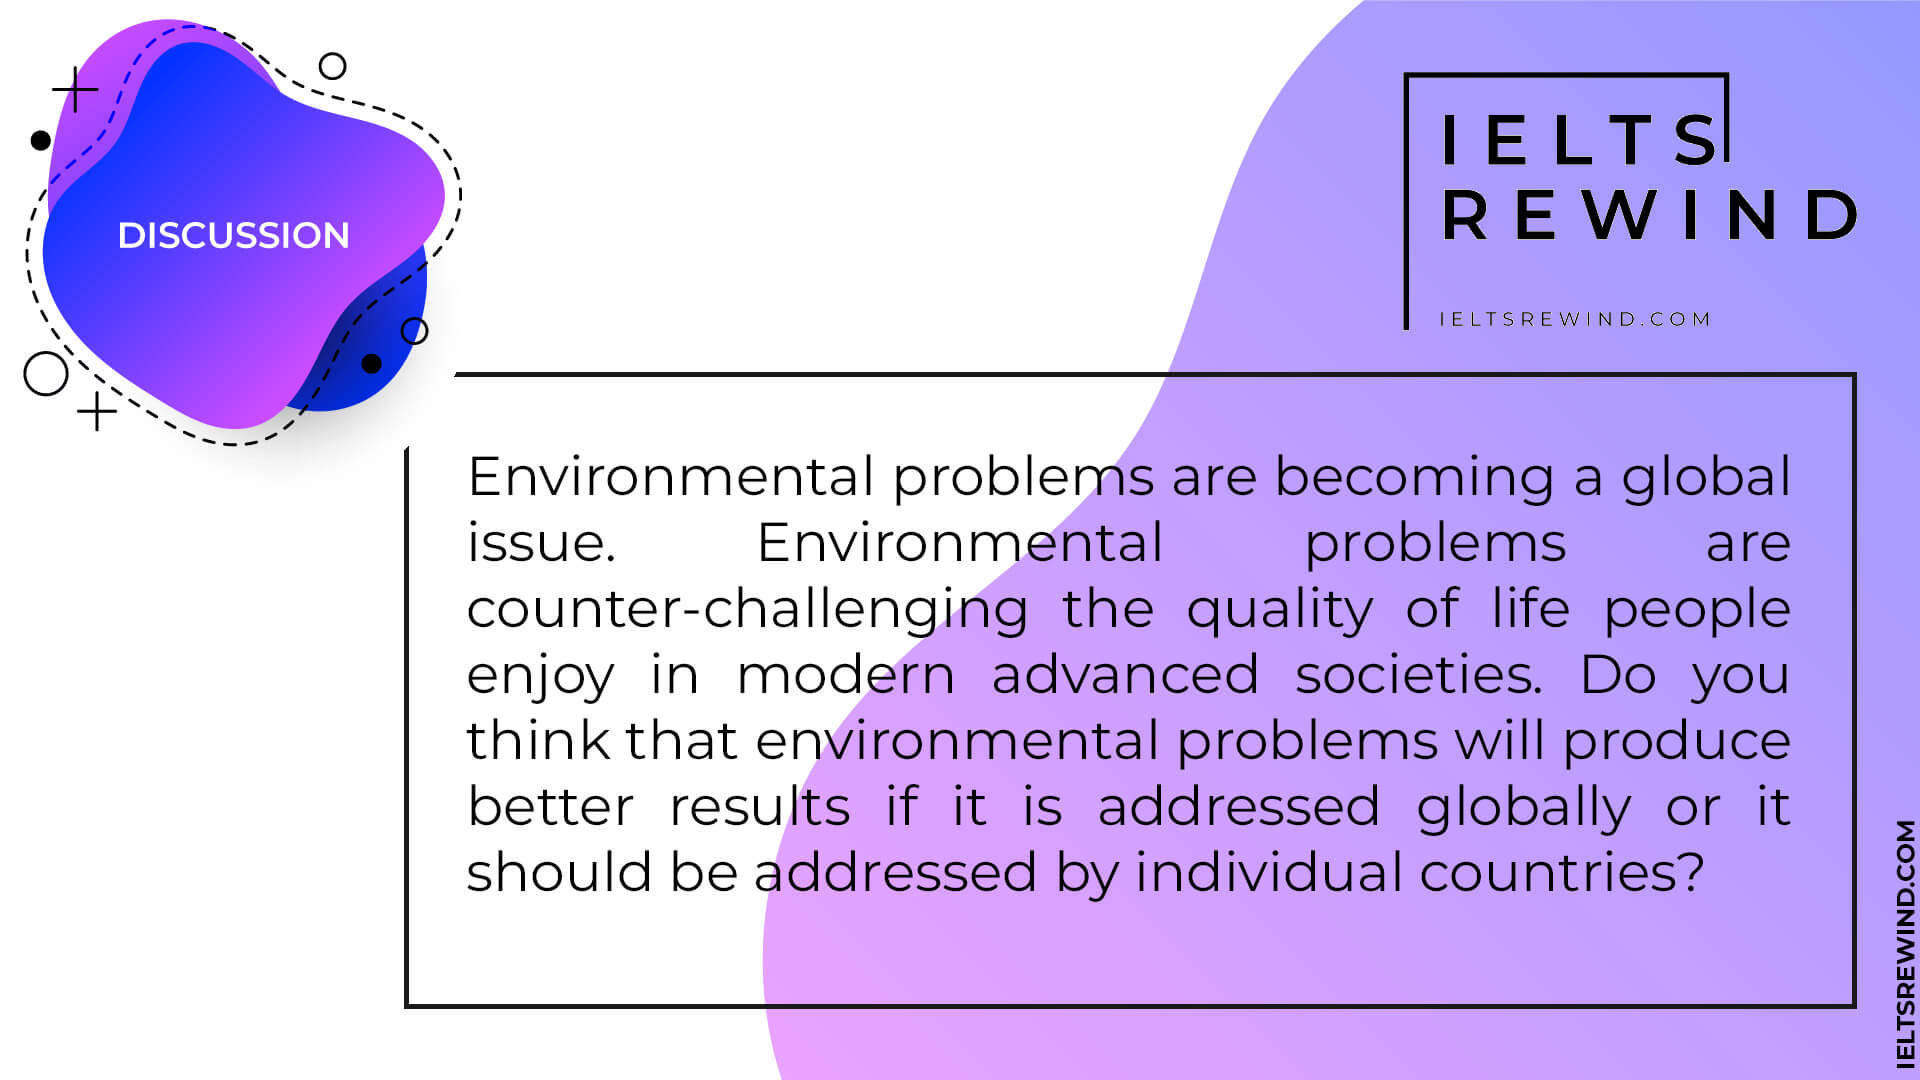 Environmental problems are becoming a global issue